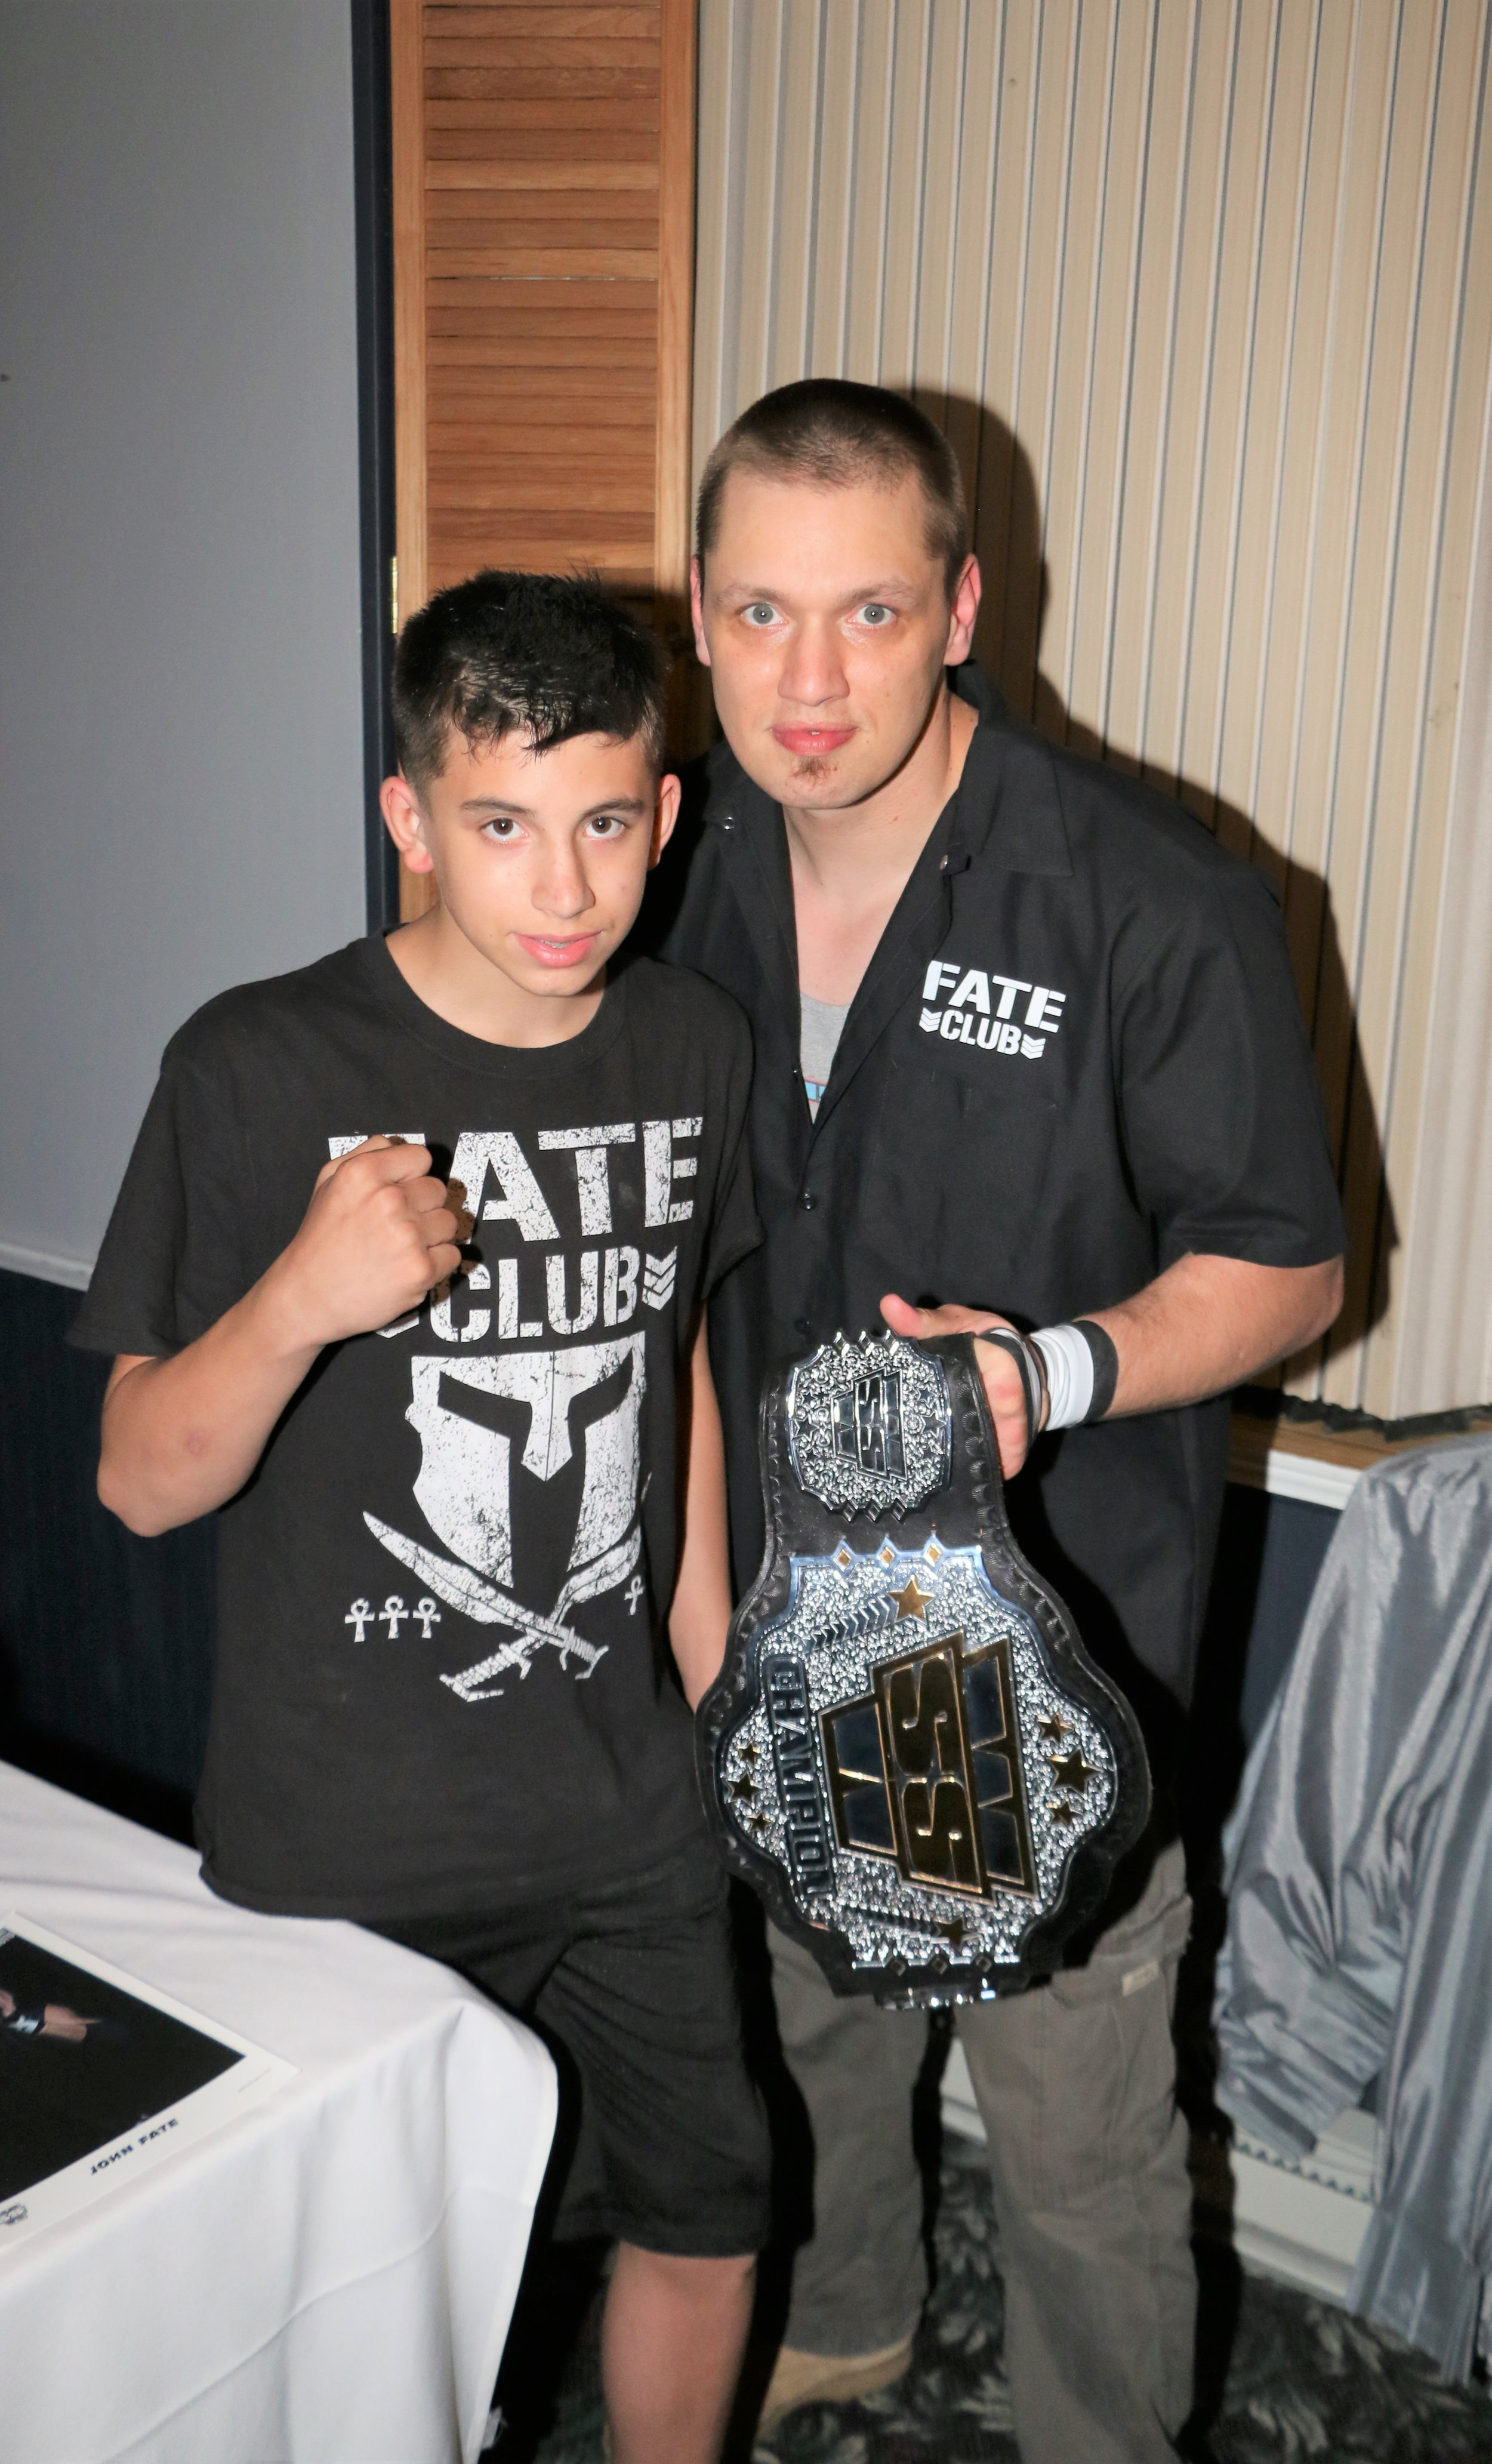 New SSW Champion John Fate poses for a picture with a fan.